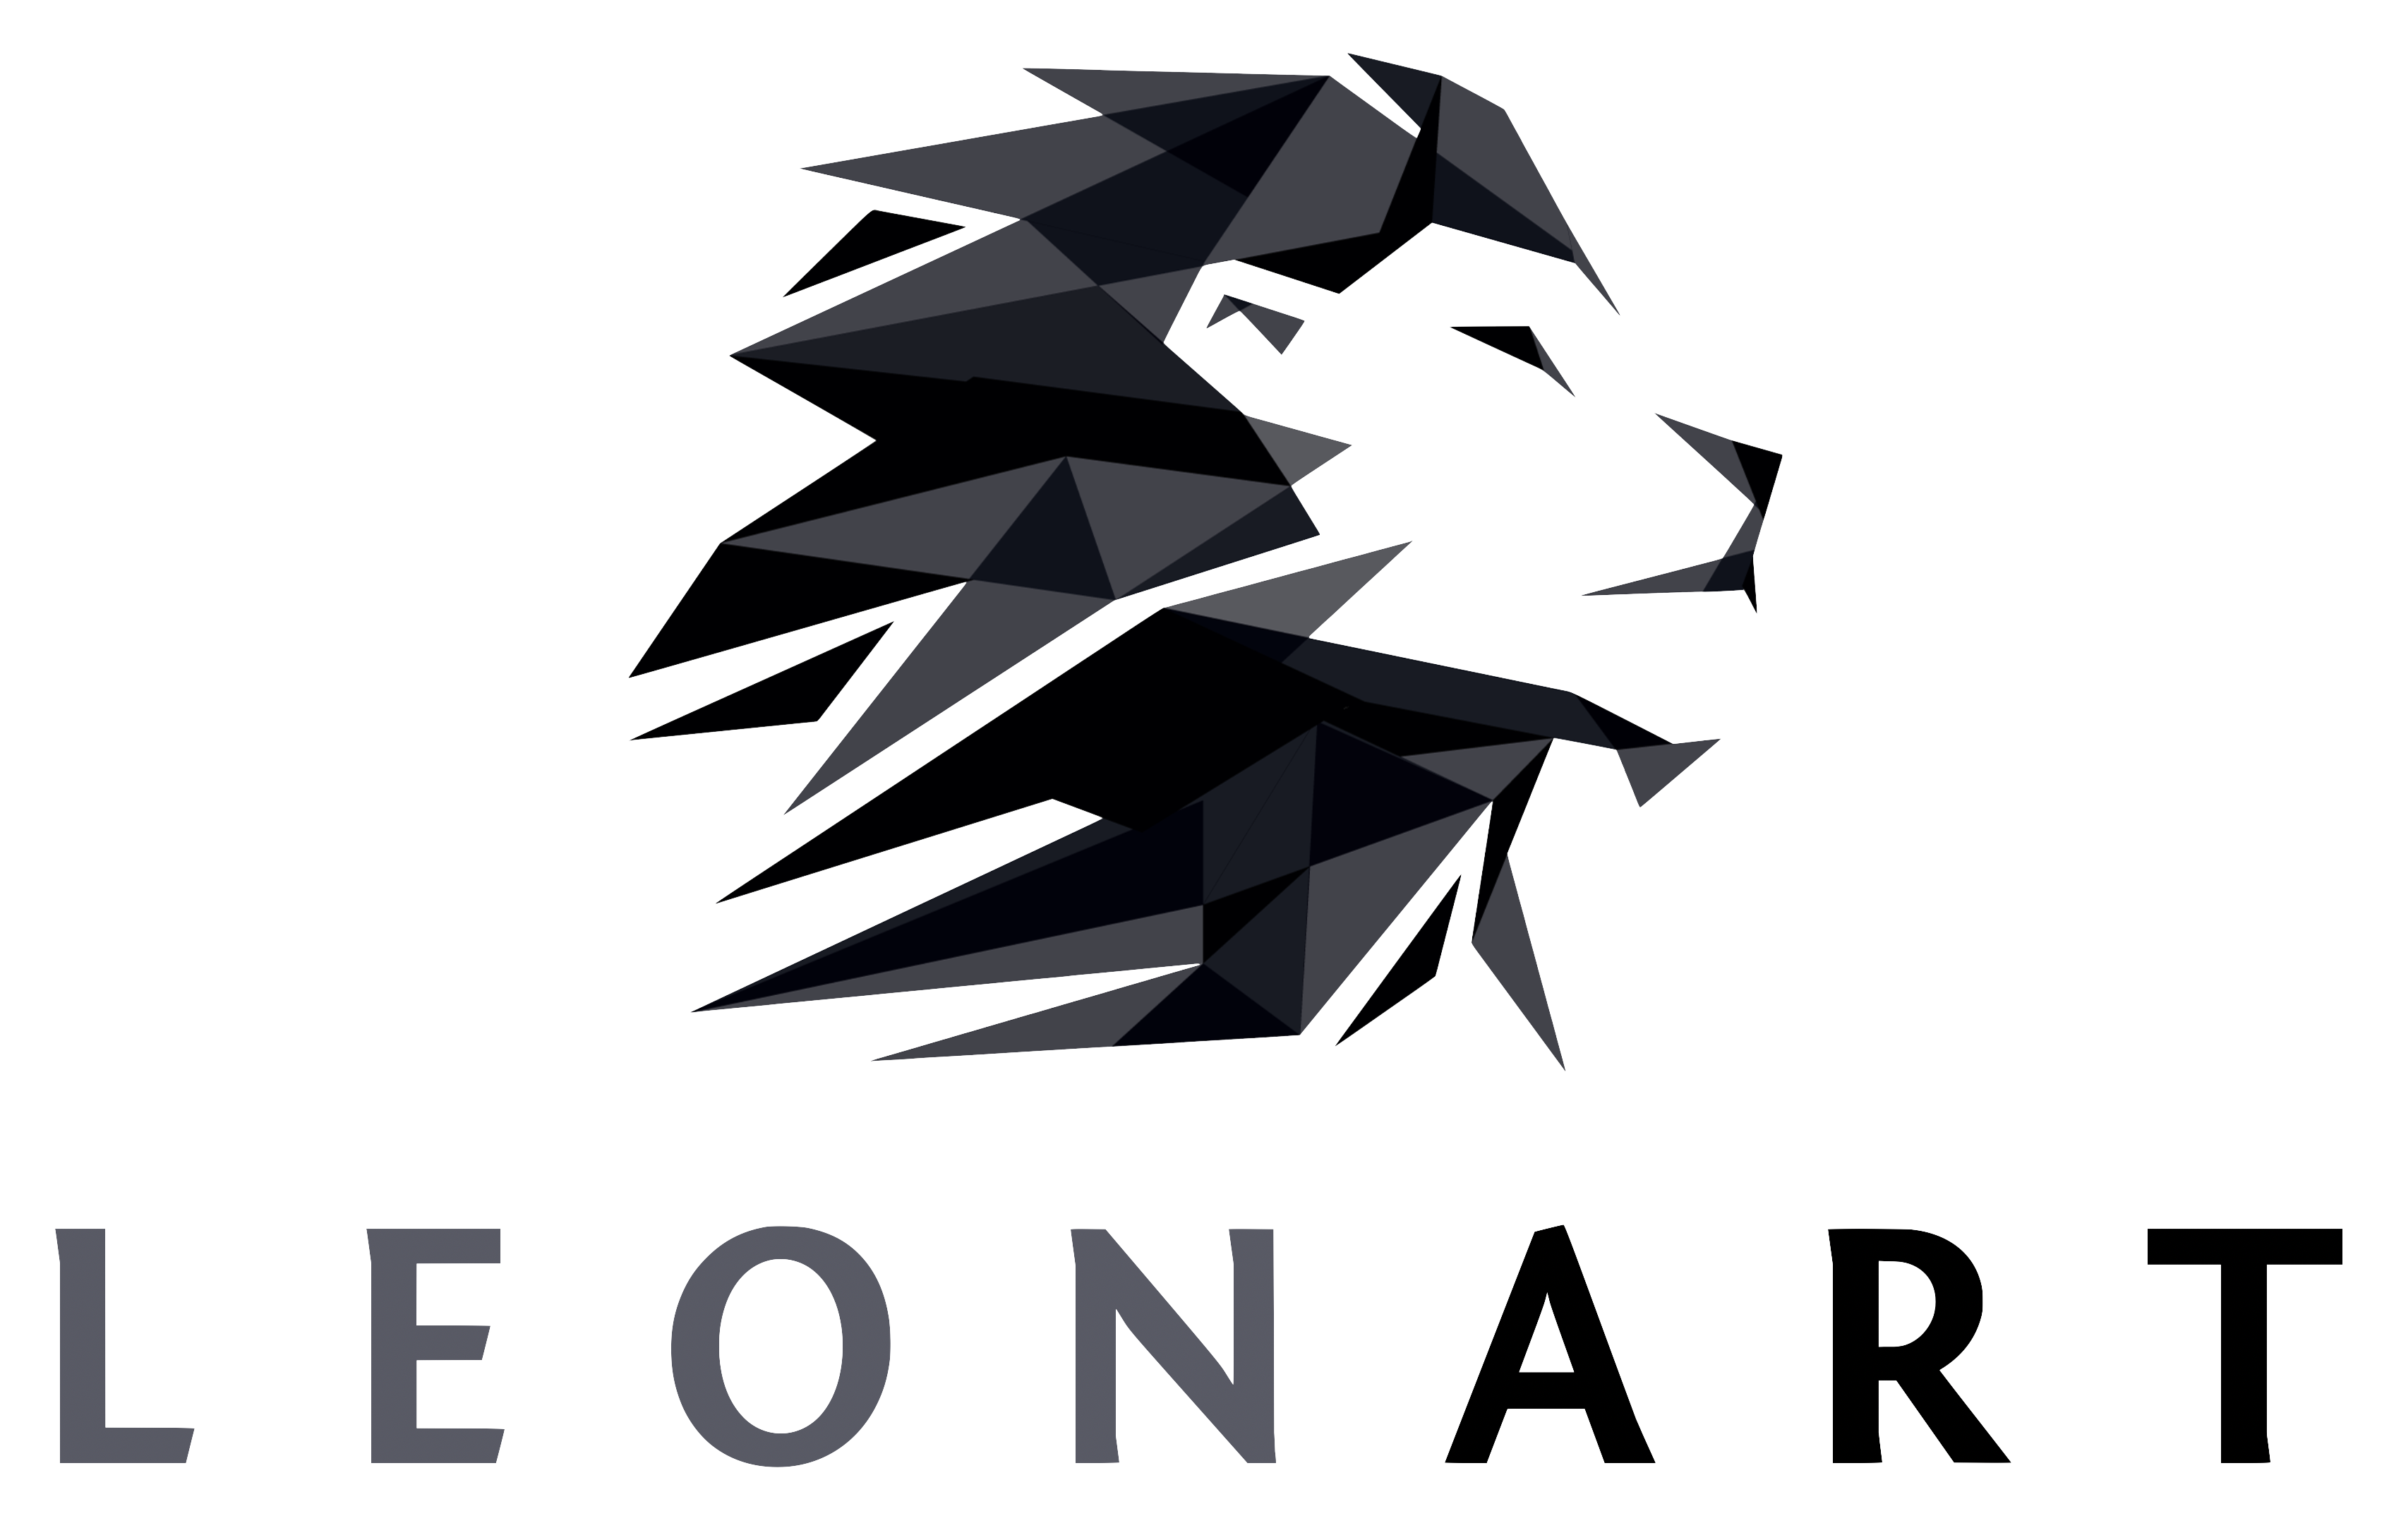 Leonart Music Desktop Tablet Logo